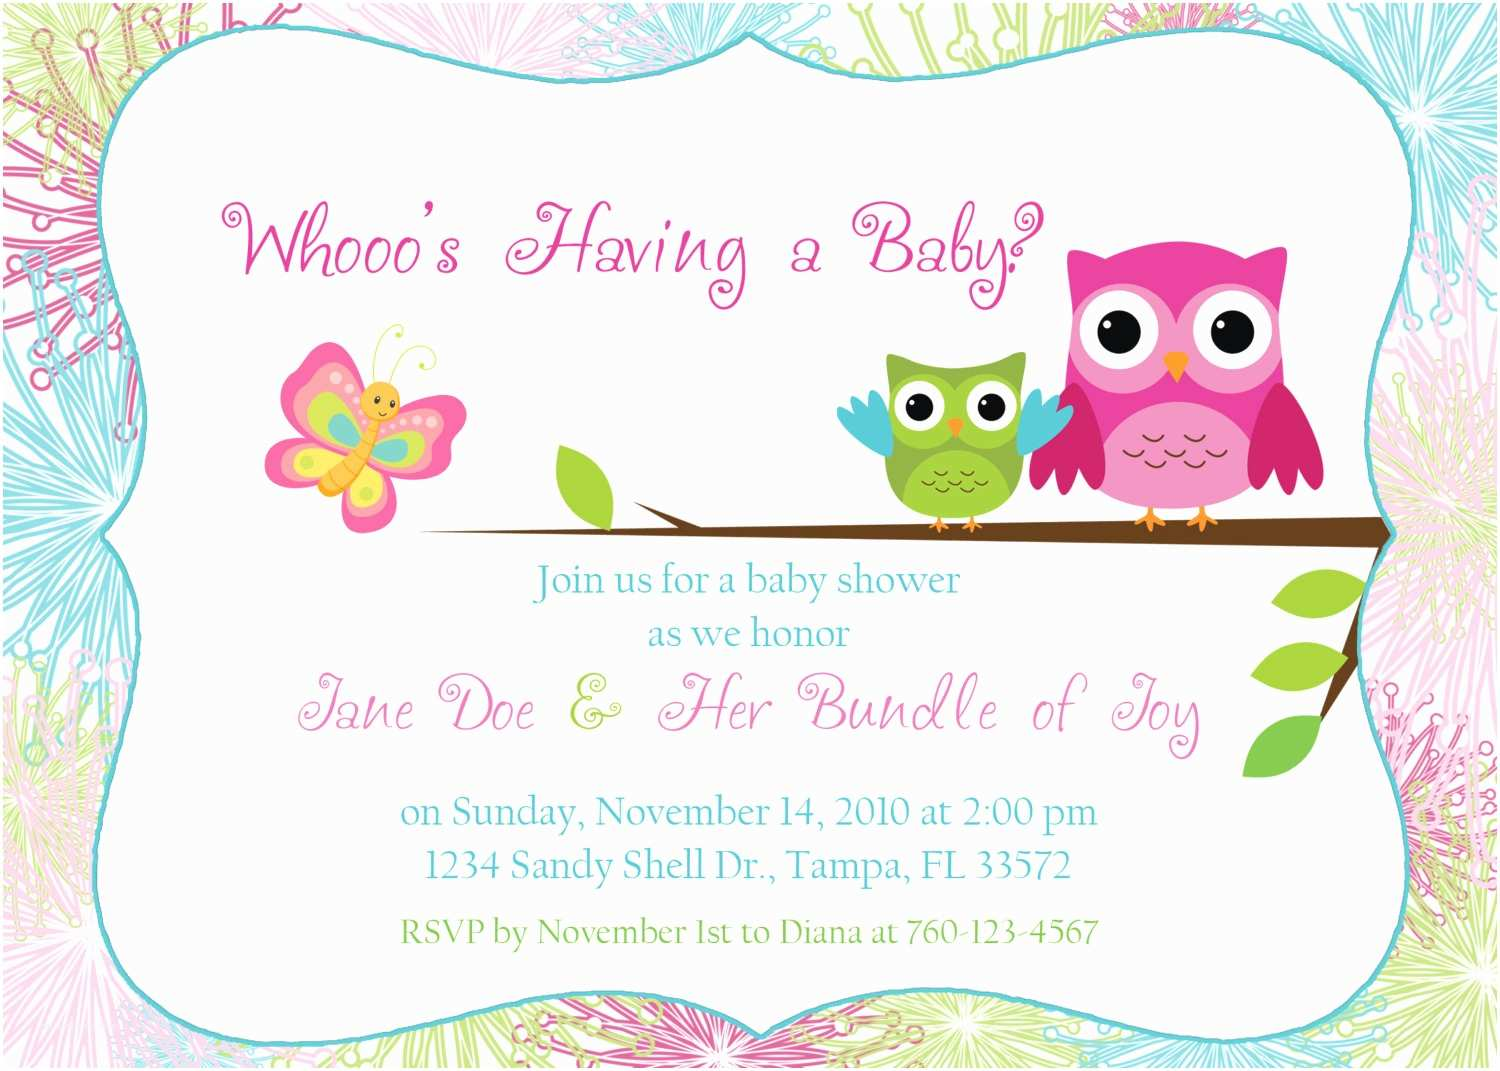 Free Baby Shower Invitations Templates Template Baby Shower Invitations Free Templates